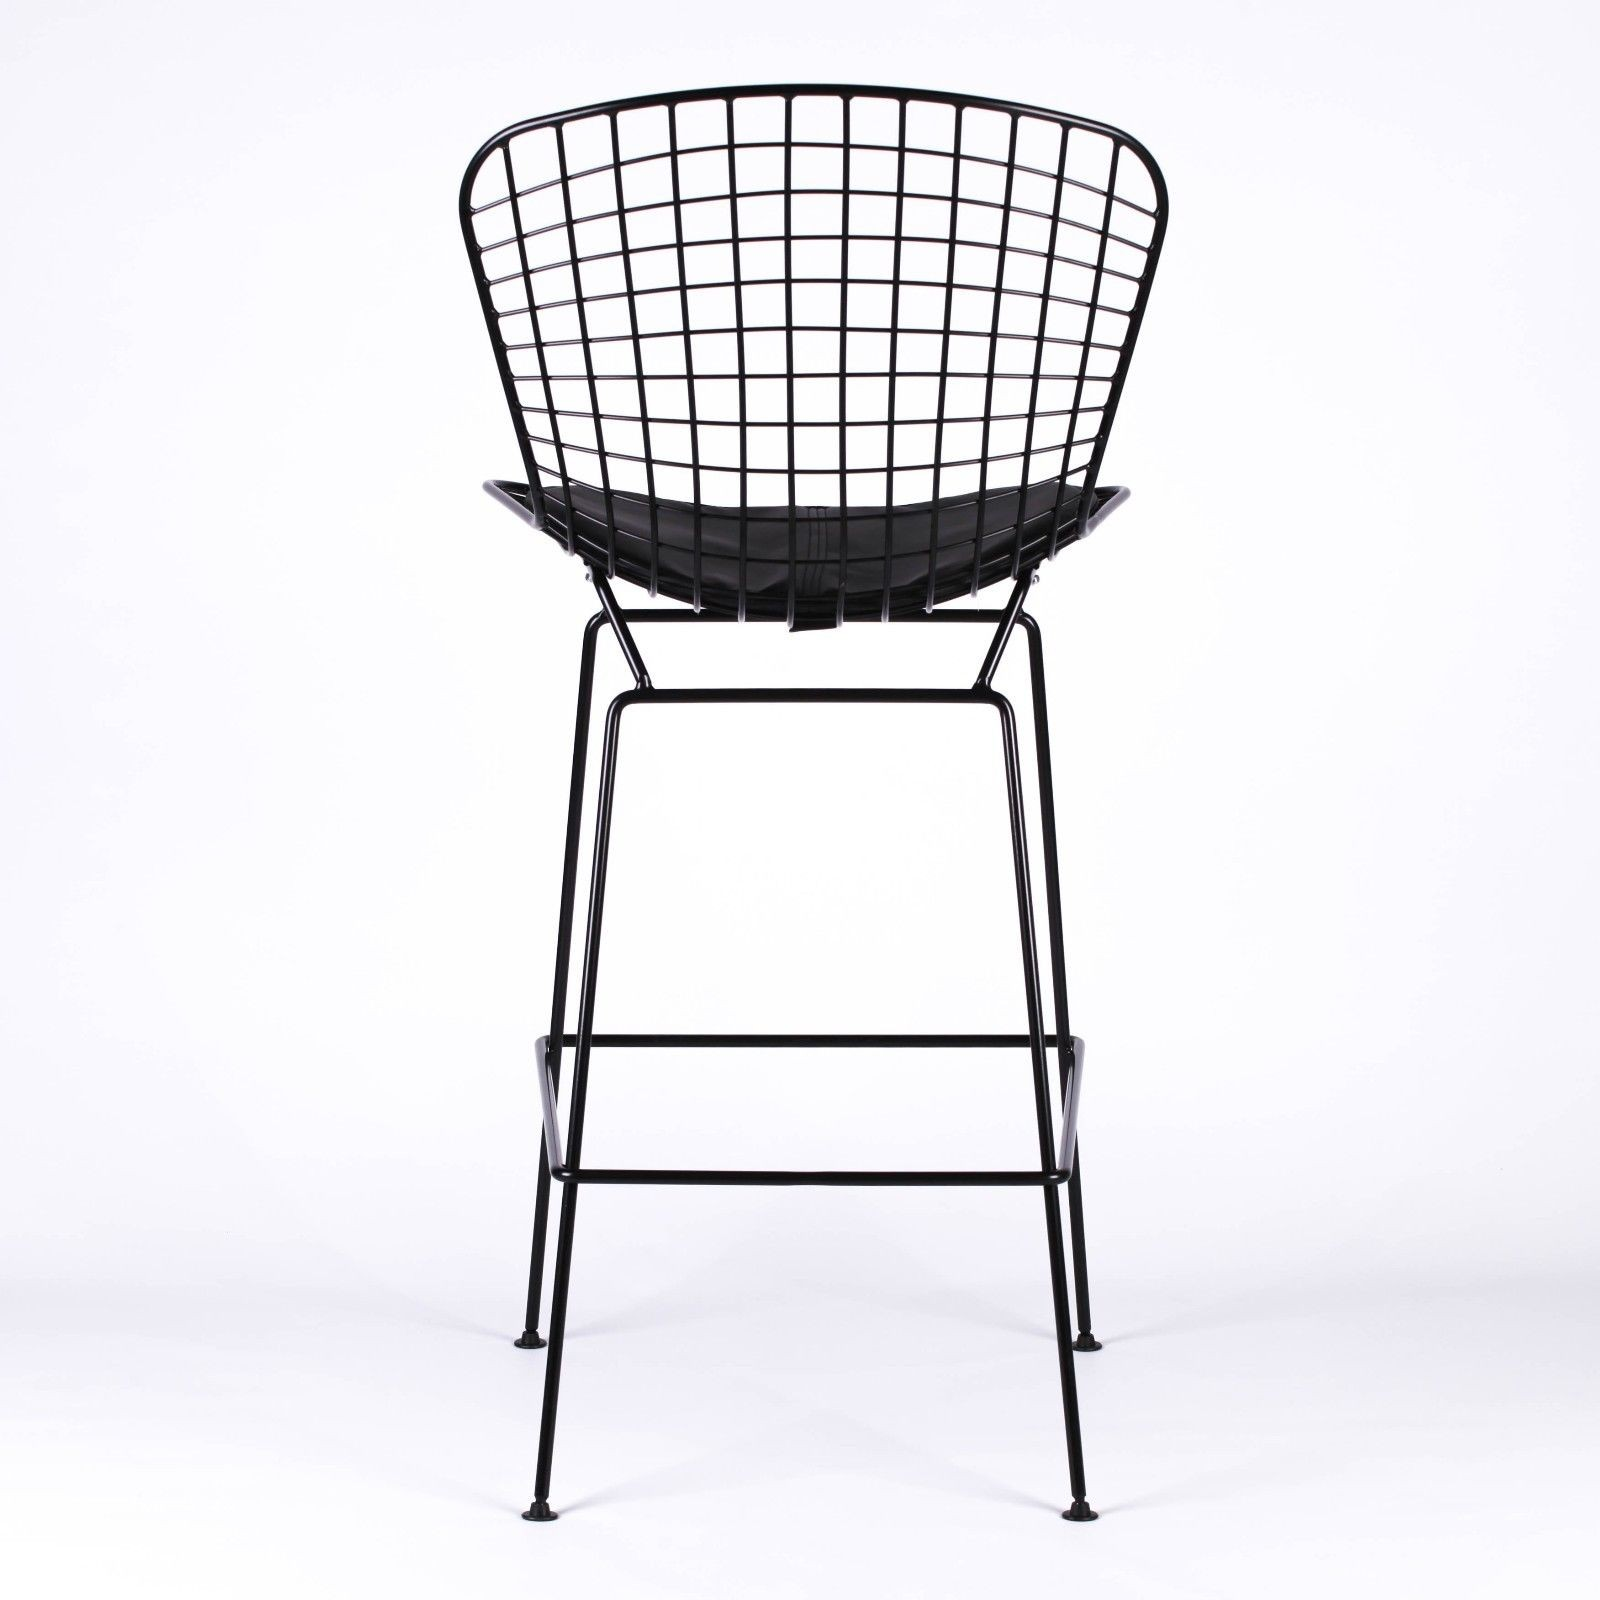 la luxury stools bar furniture metal chic mesh maison uk wire stool item black